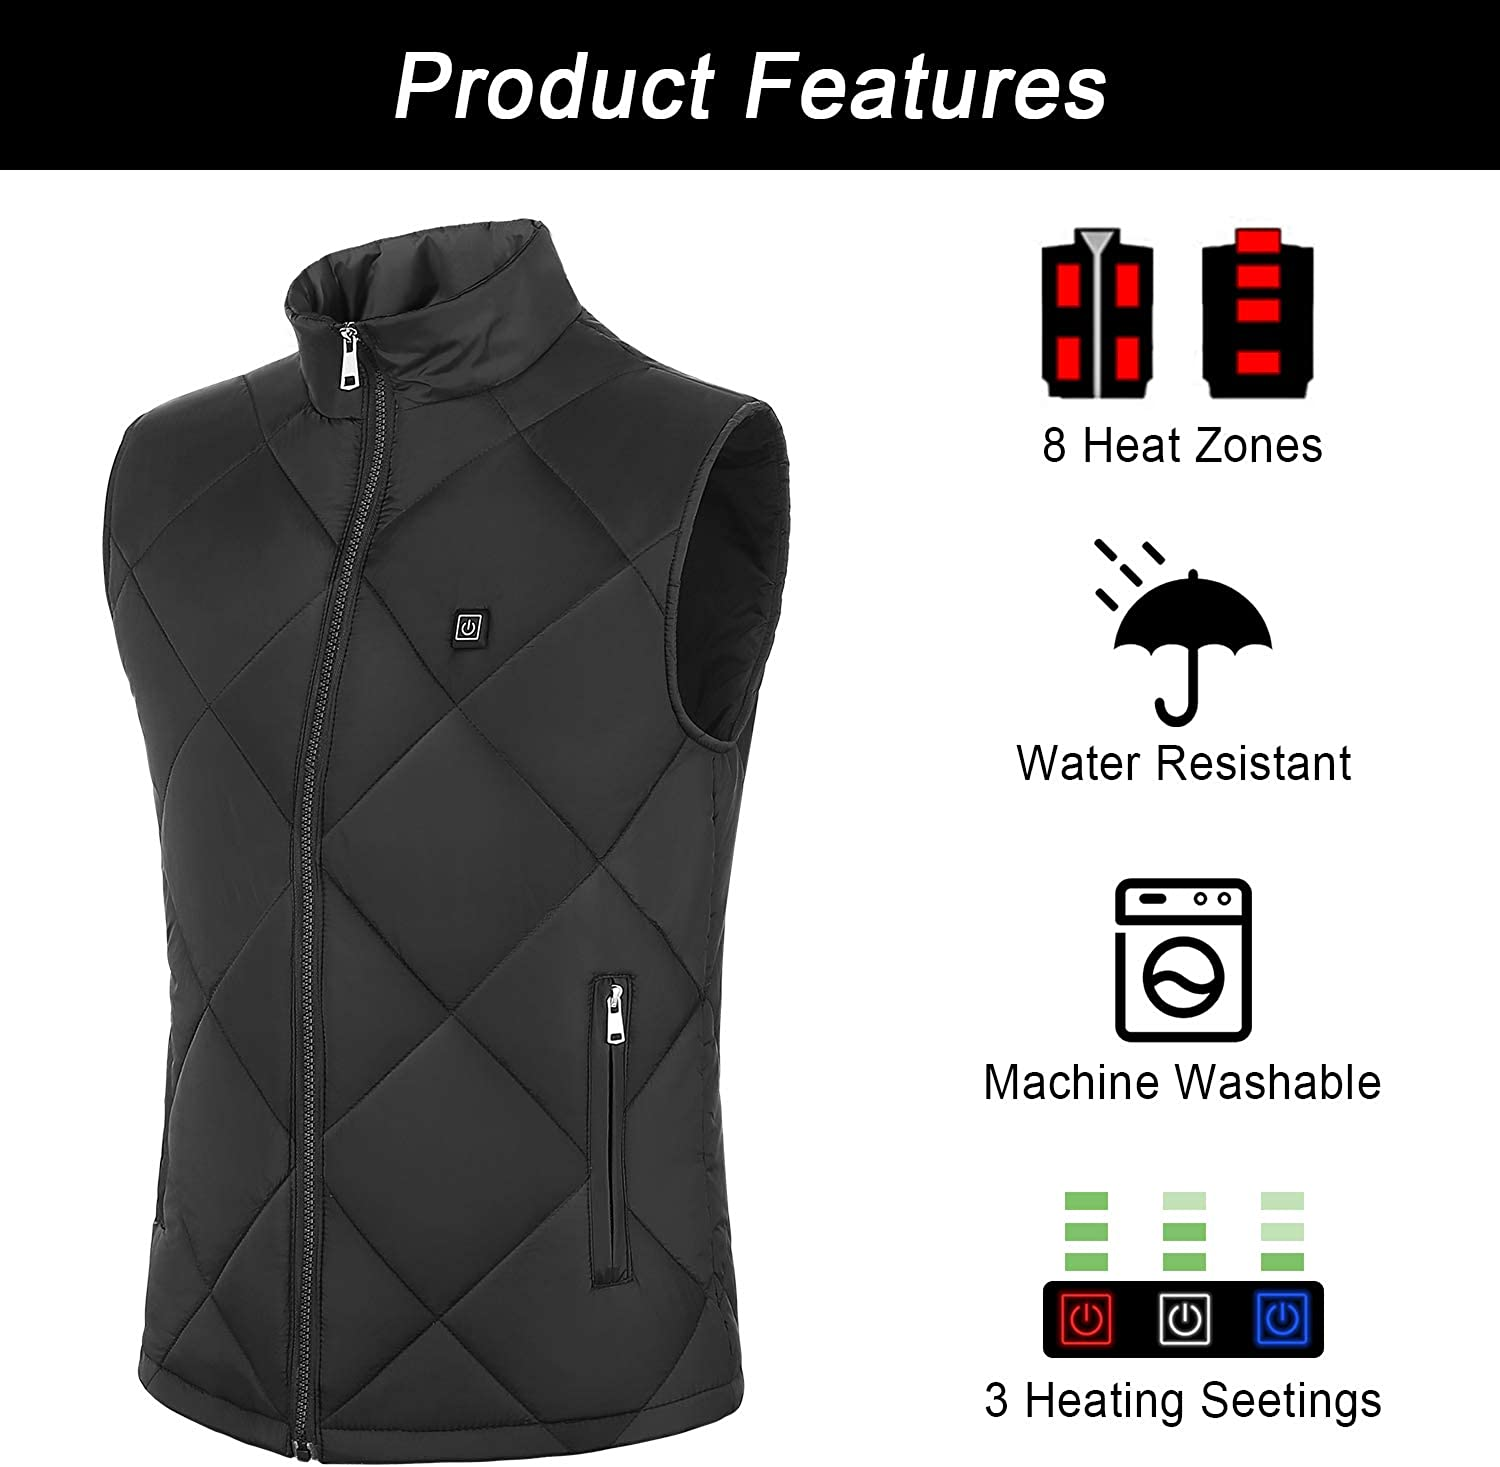 FERNIDA Heated Vest for Men Women USB Charging Electric Heating Vests Water Wind Resistant Battery Pack not Included